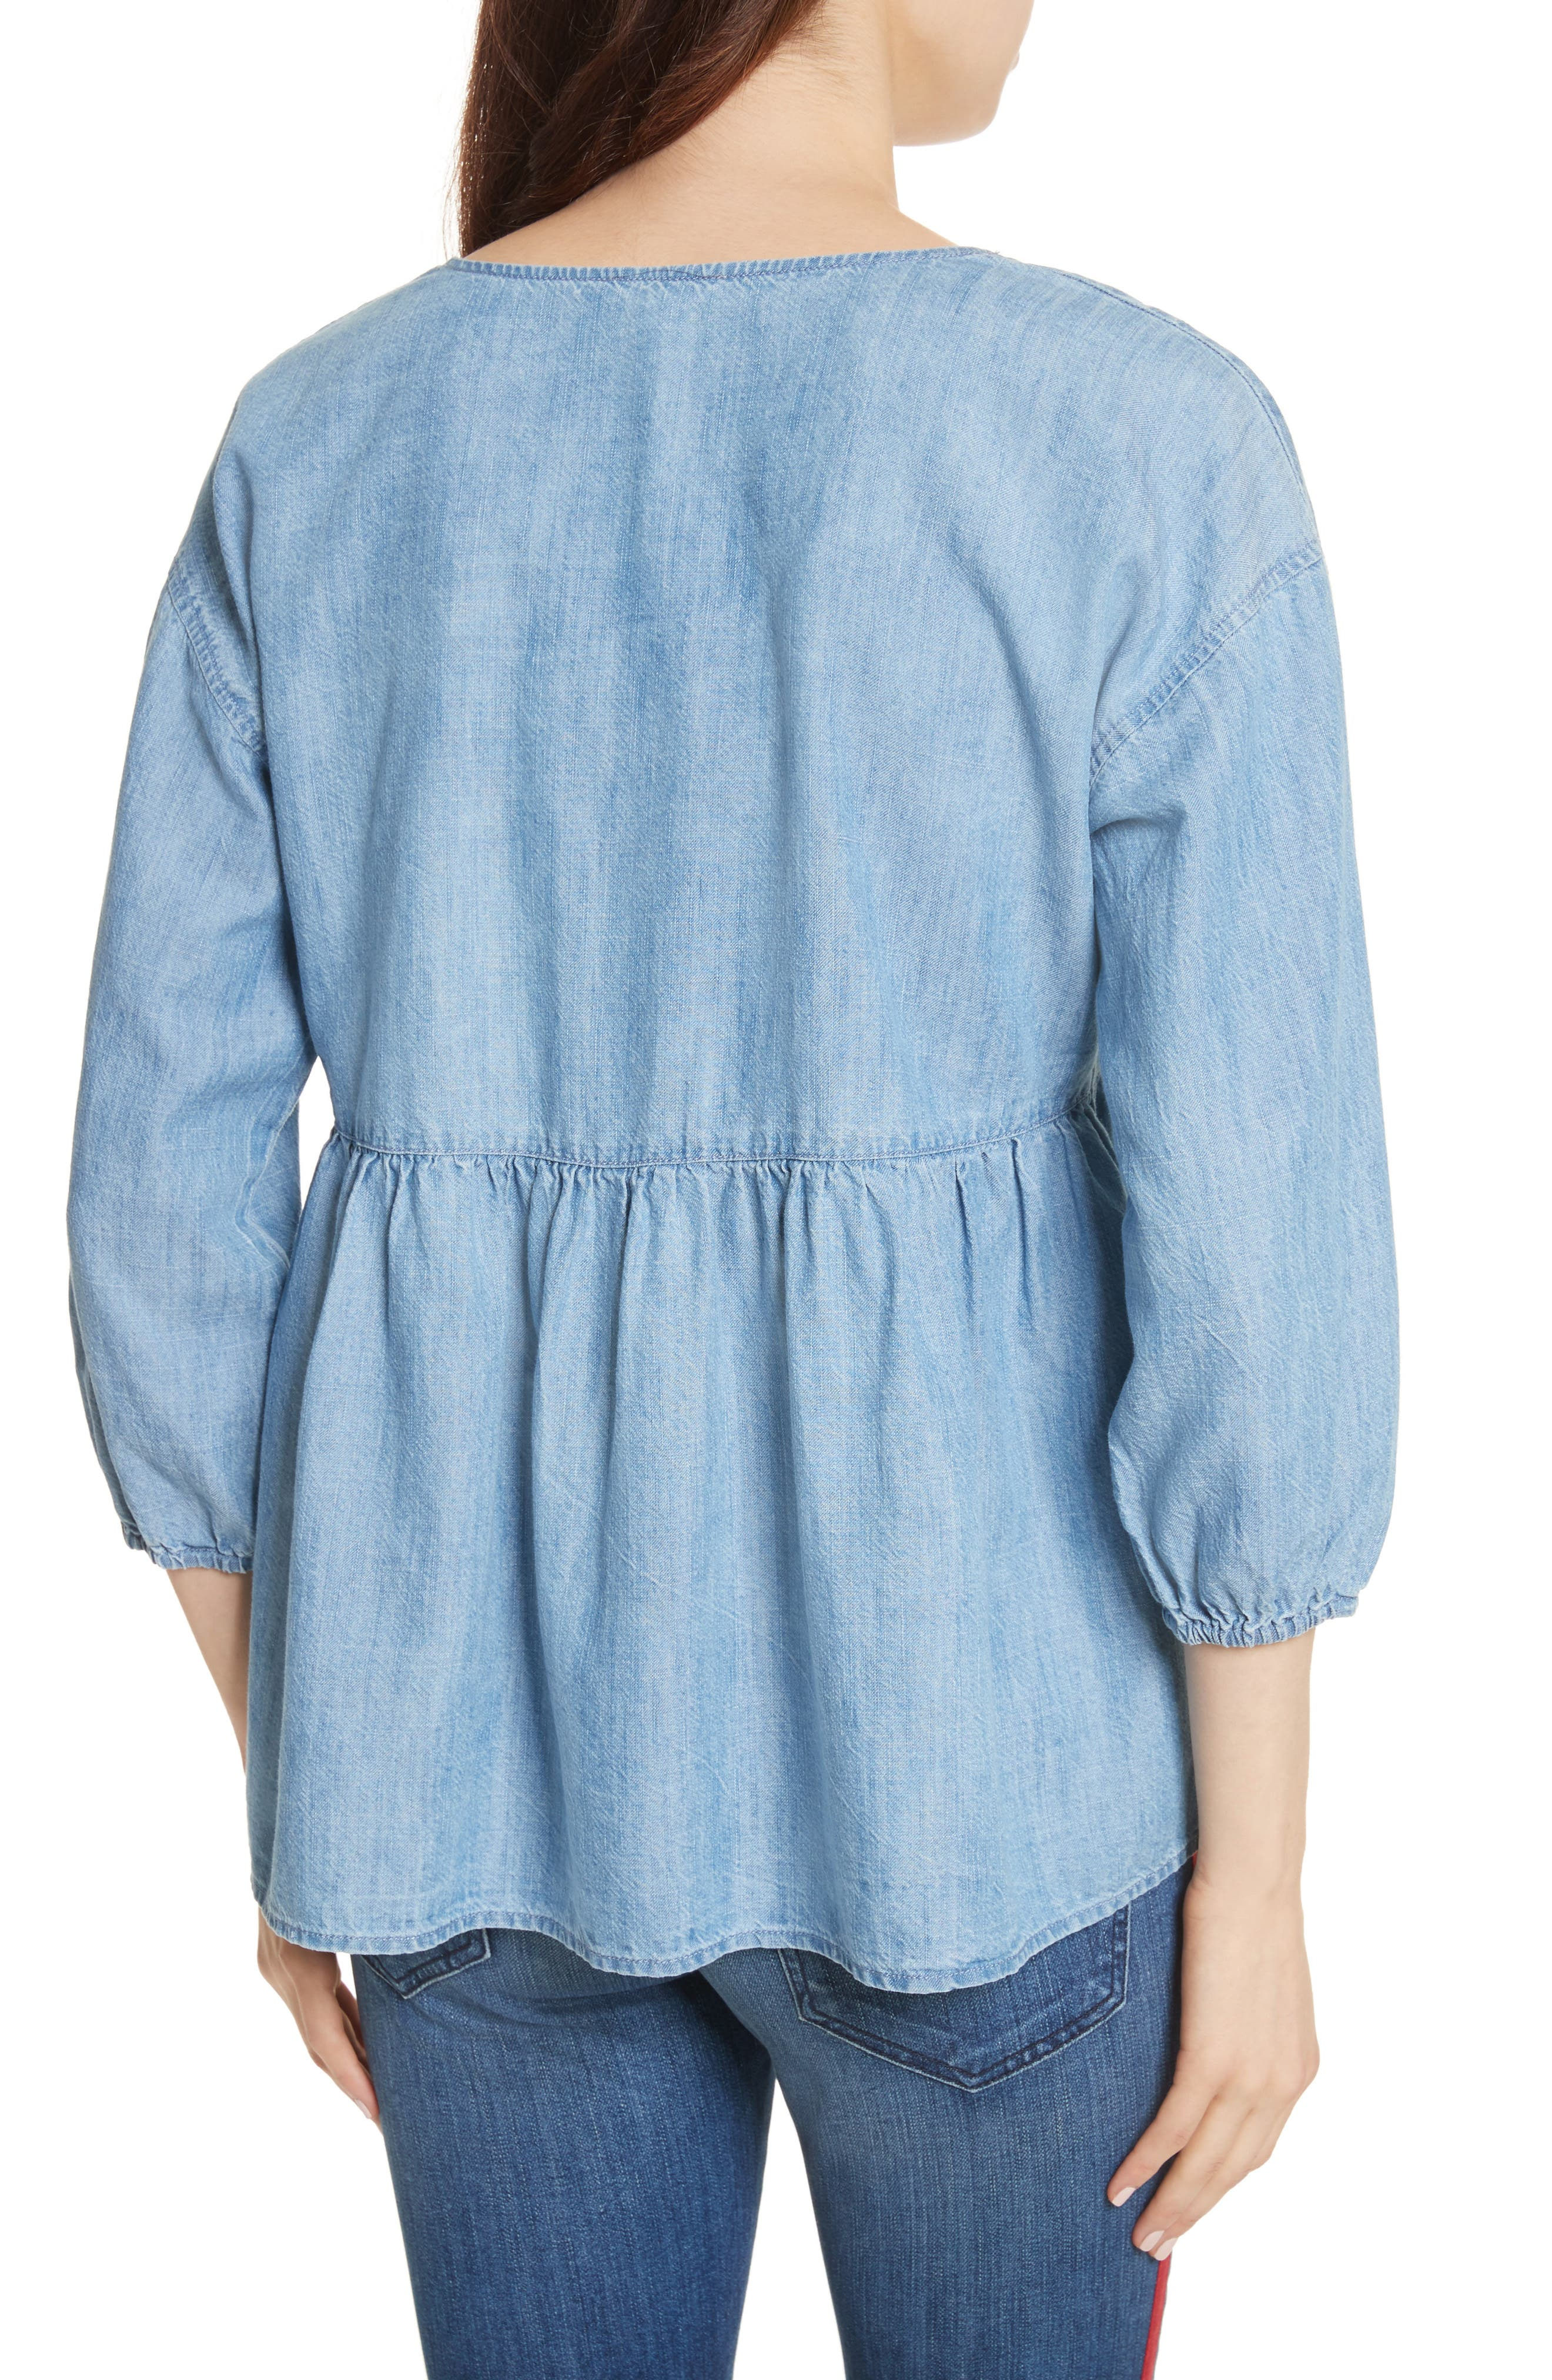 Alternate Image 2  - Joie Bealette Lace-Up Chambray Top